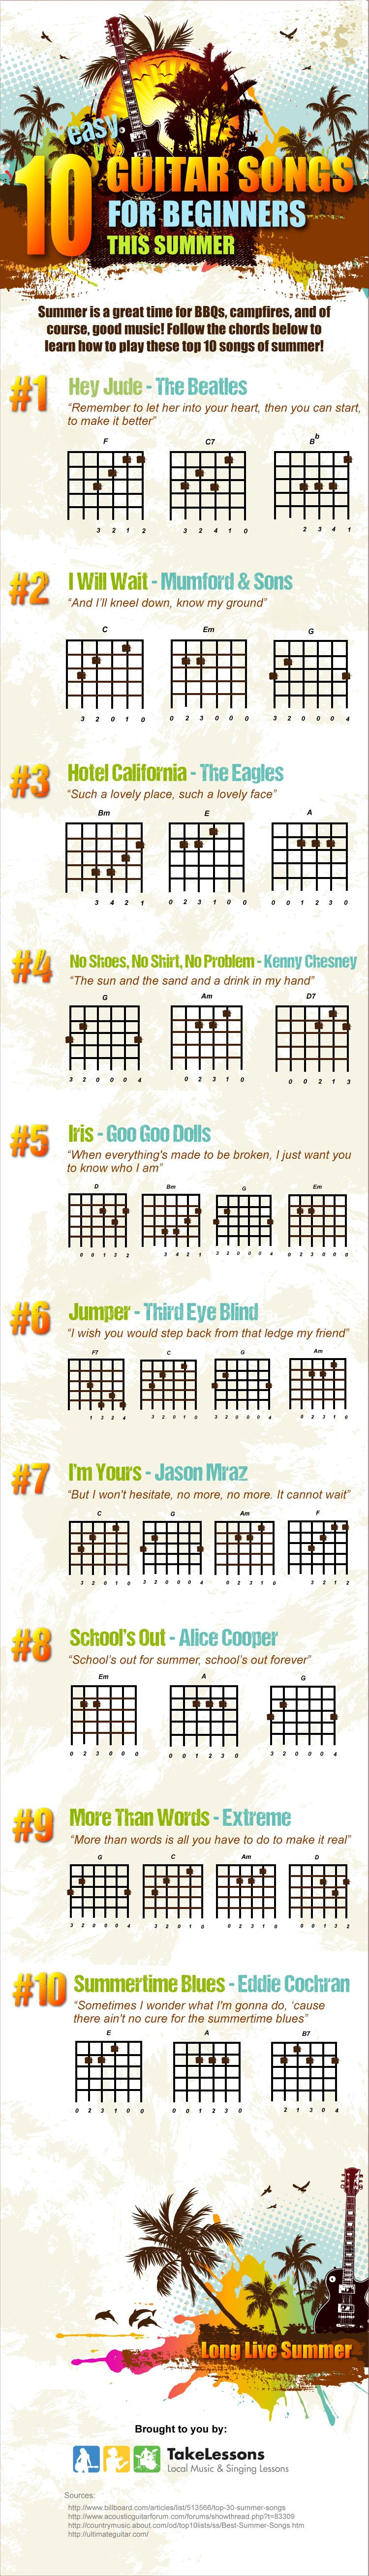 10 easy guitar songs for beginners this summer infographic guitars guitar songs for. Black Bedroom Furniture Sets. Home Design Ideas